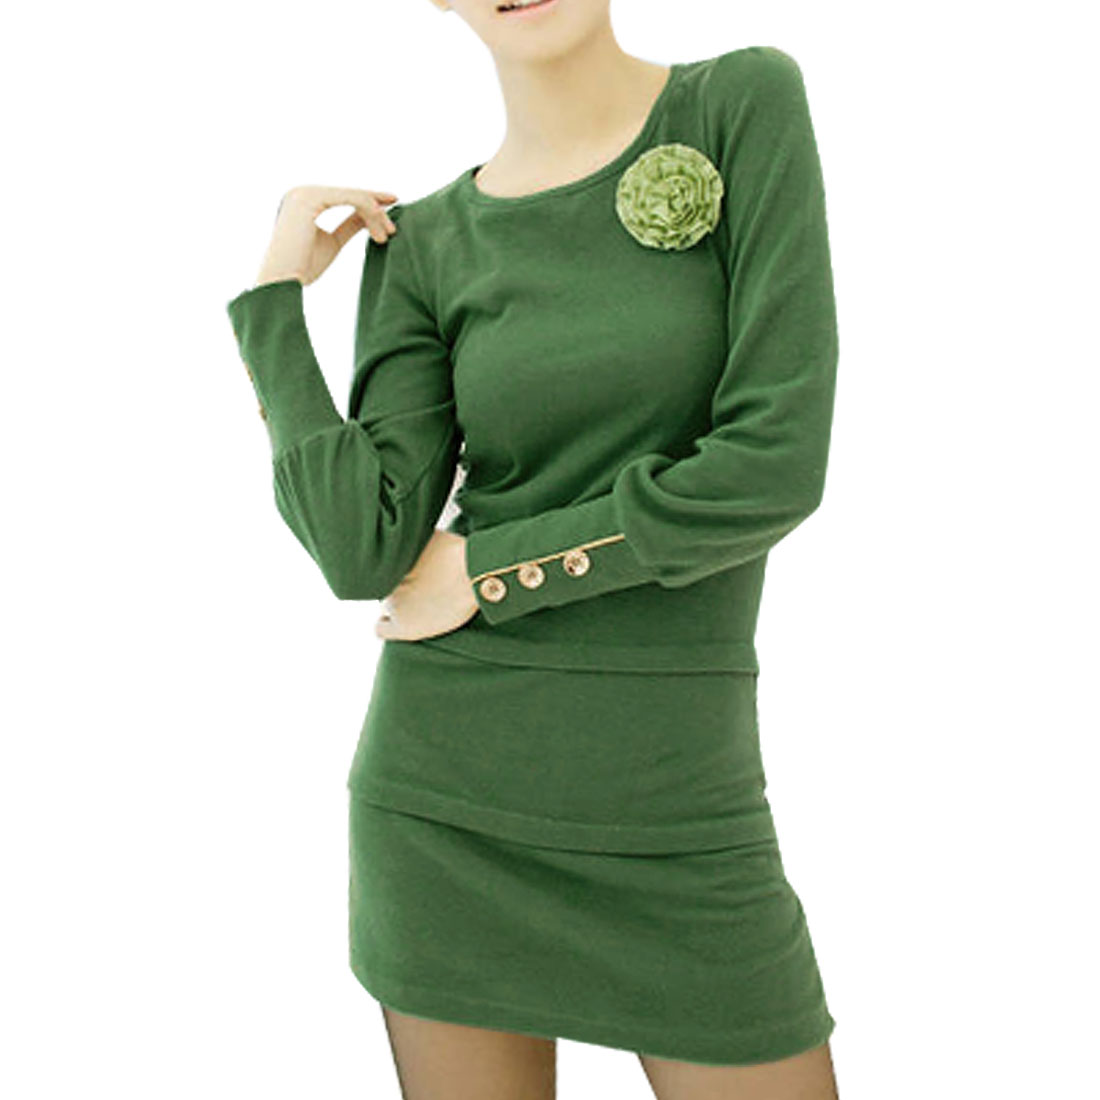 Women Green Scoop Neck Long Sleeves Stretchy Mini Dress XS